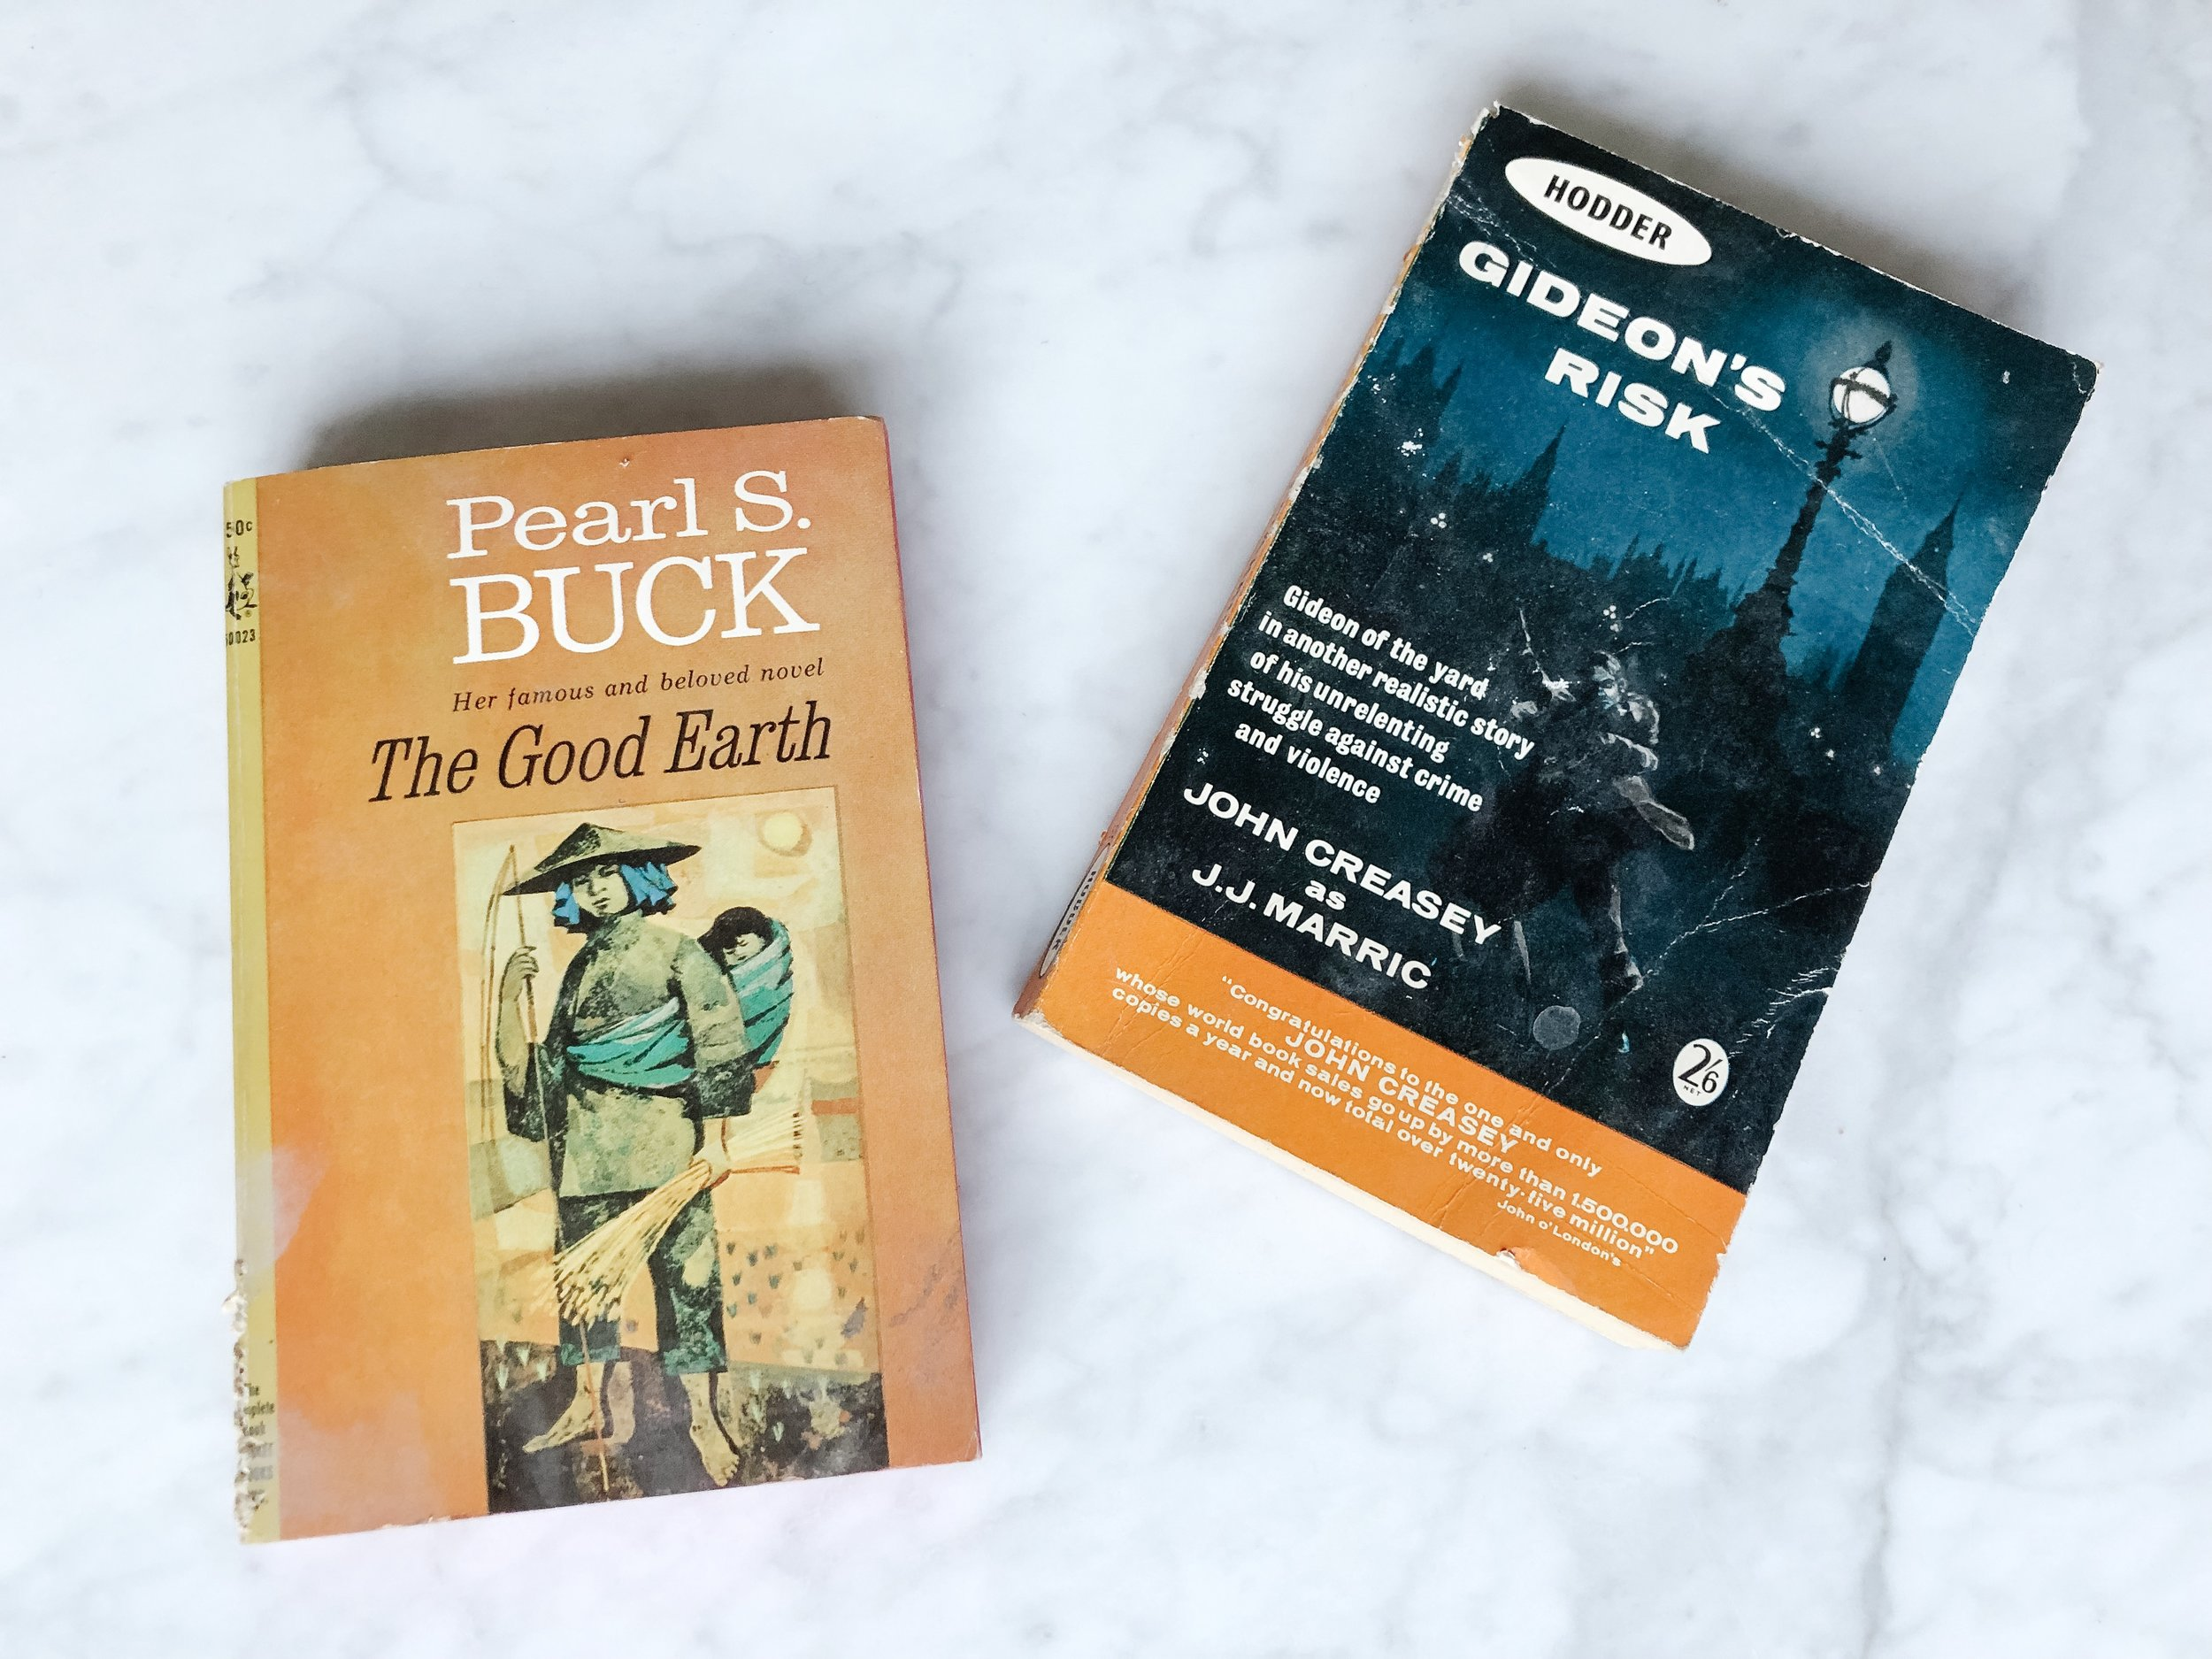 The 1964 version of The Good Earth and the 1962 version of Gideon's Risk